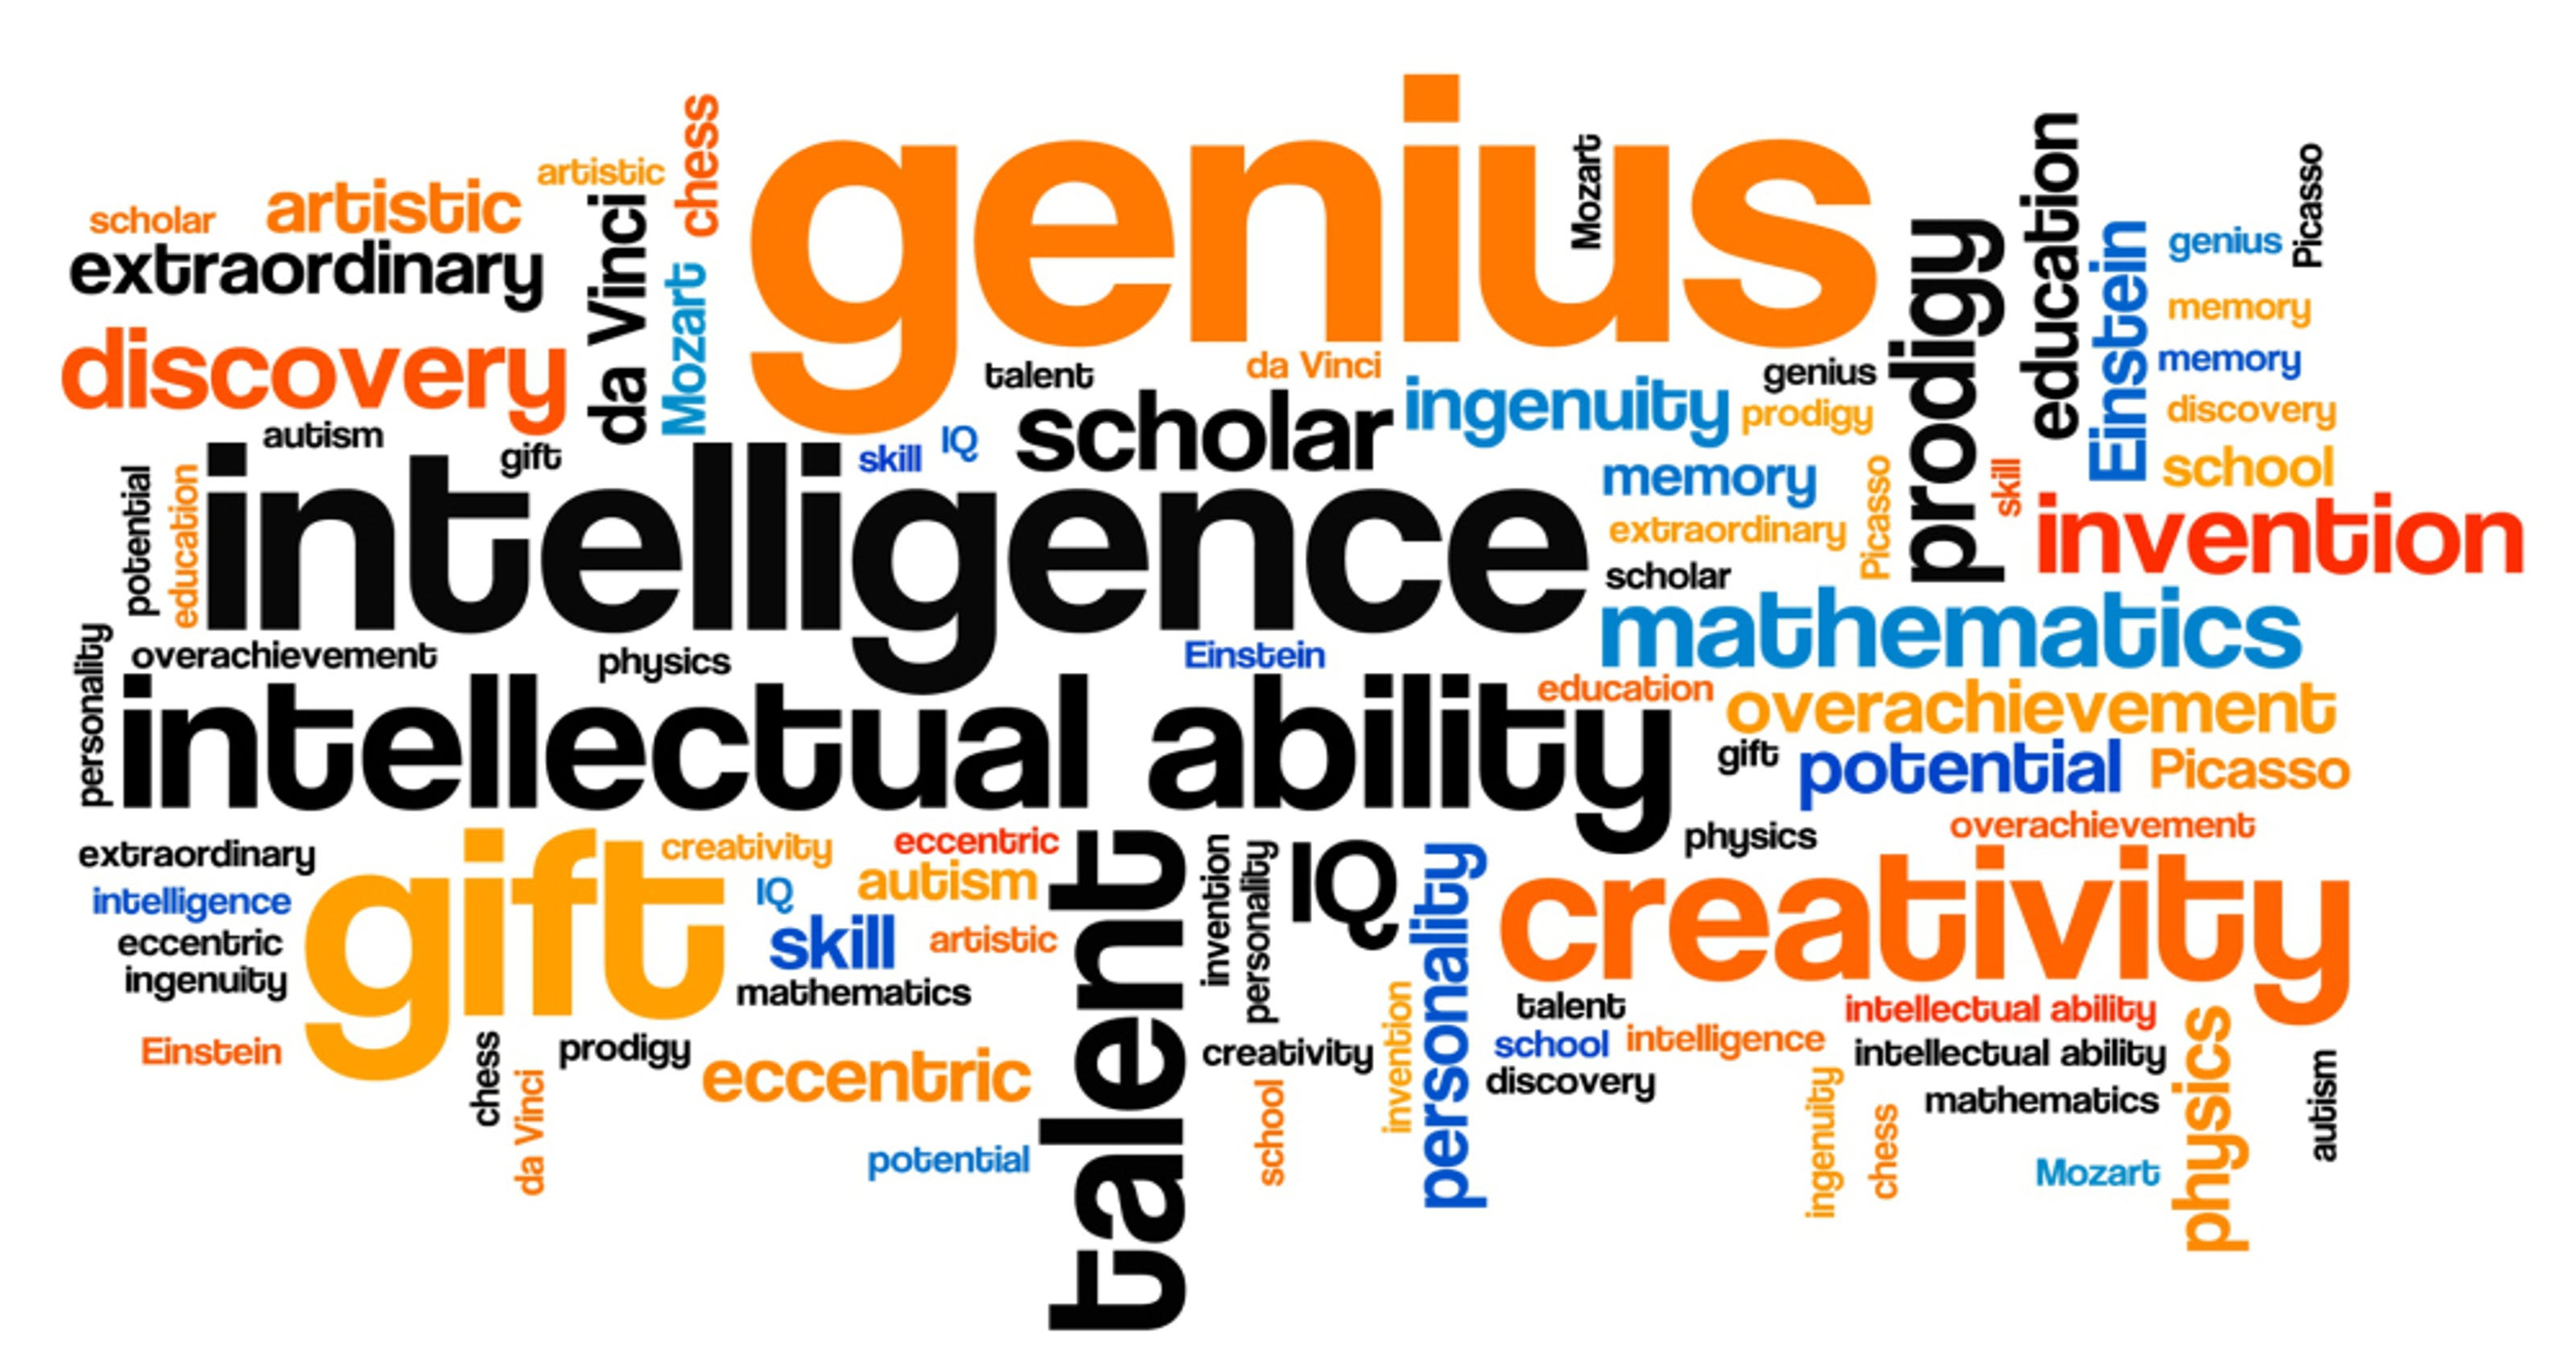 Using these words in your admission essay may secure you a spot at